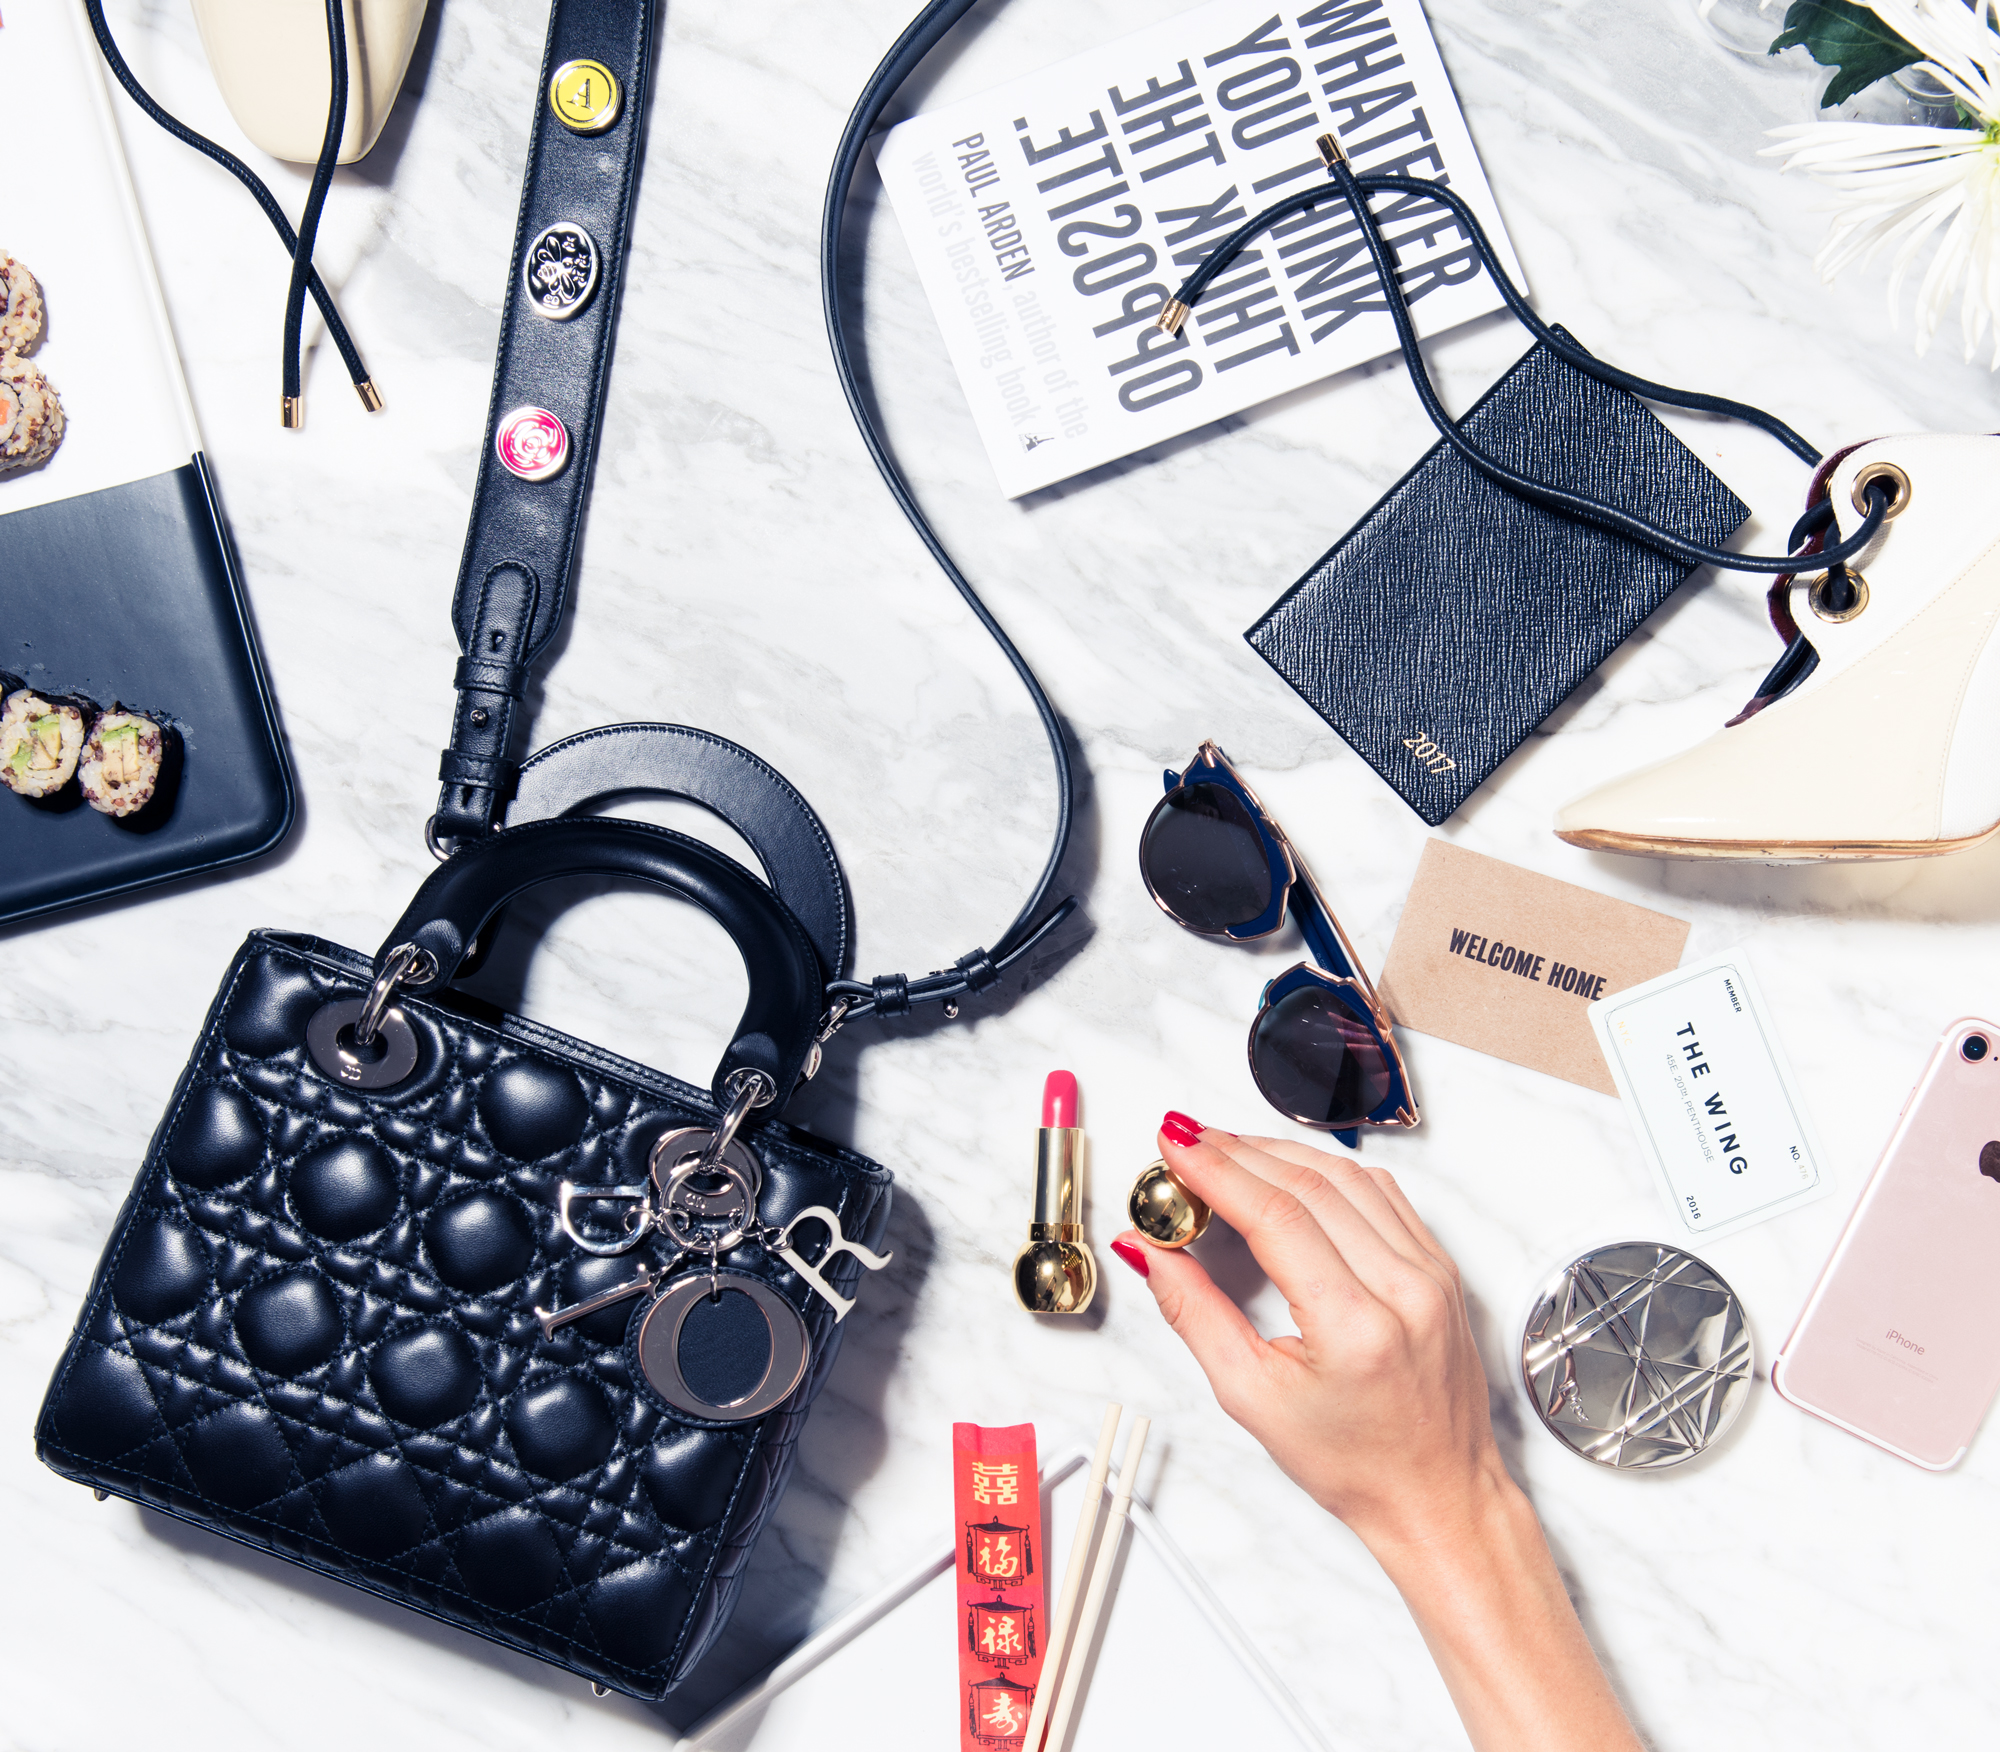 10f4c48dfc6 How to Style Dior's New My Lady Dior Bag No Matter Your Style - Coveteur